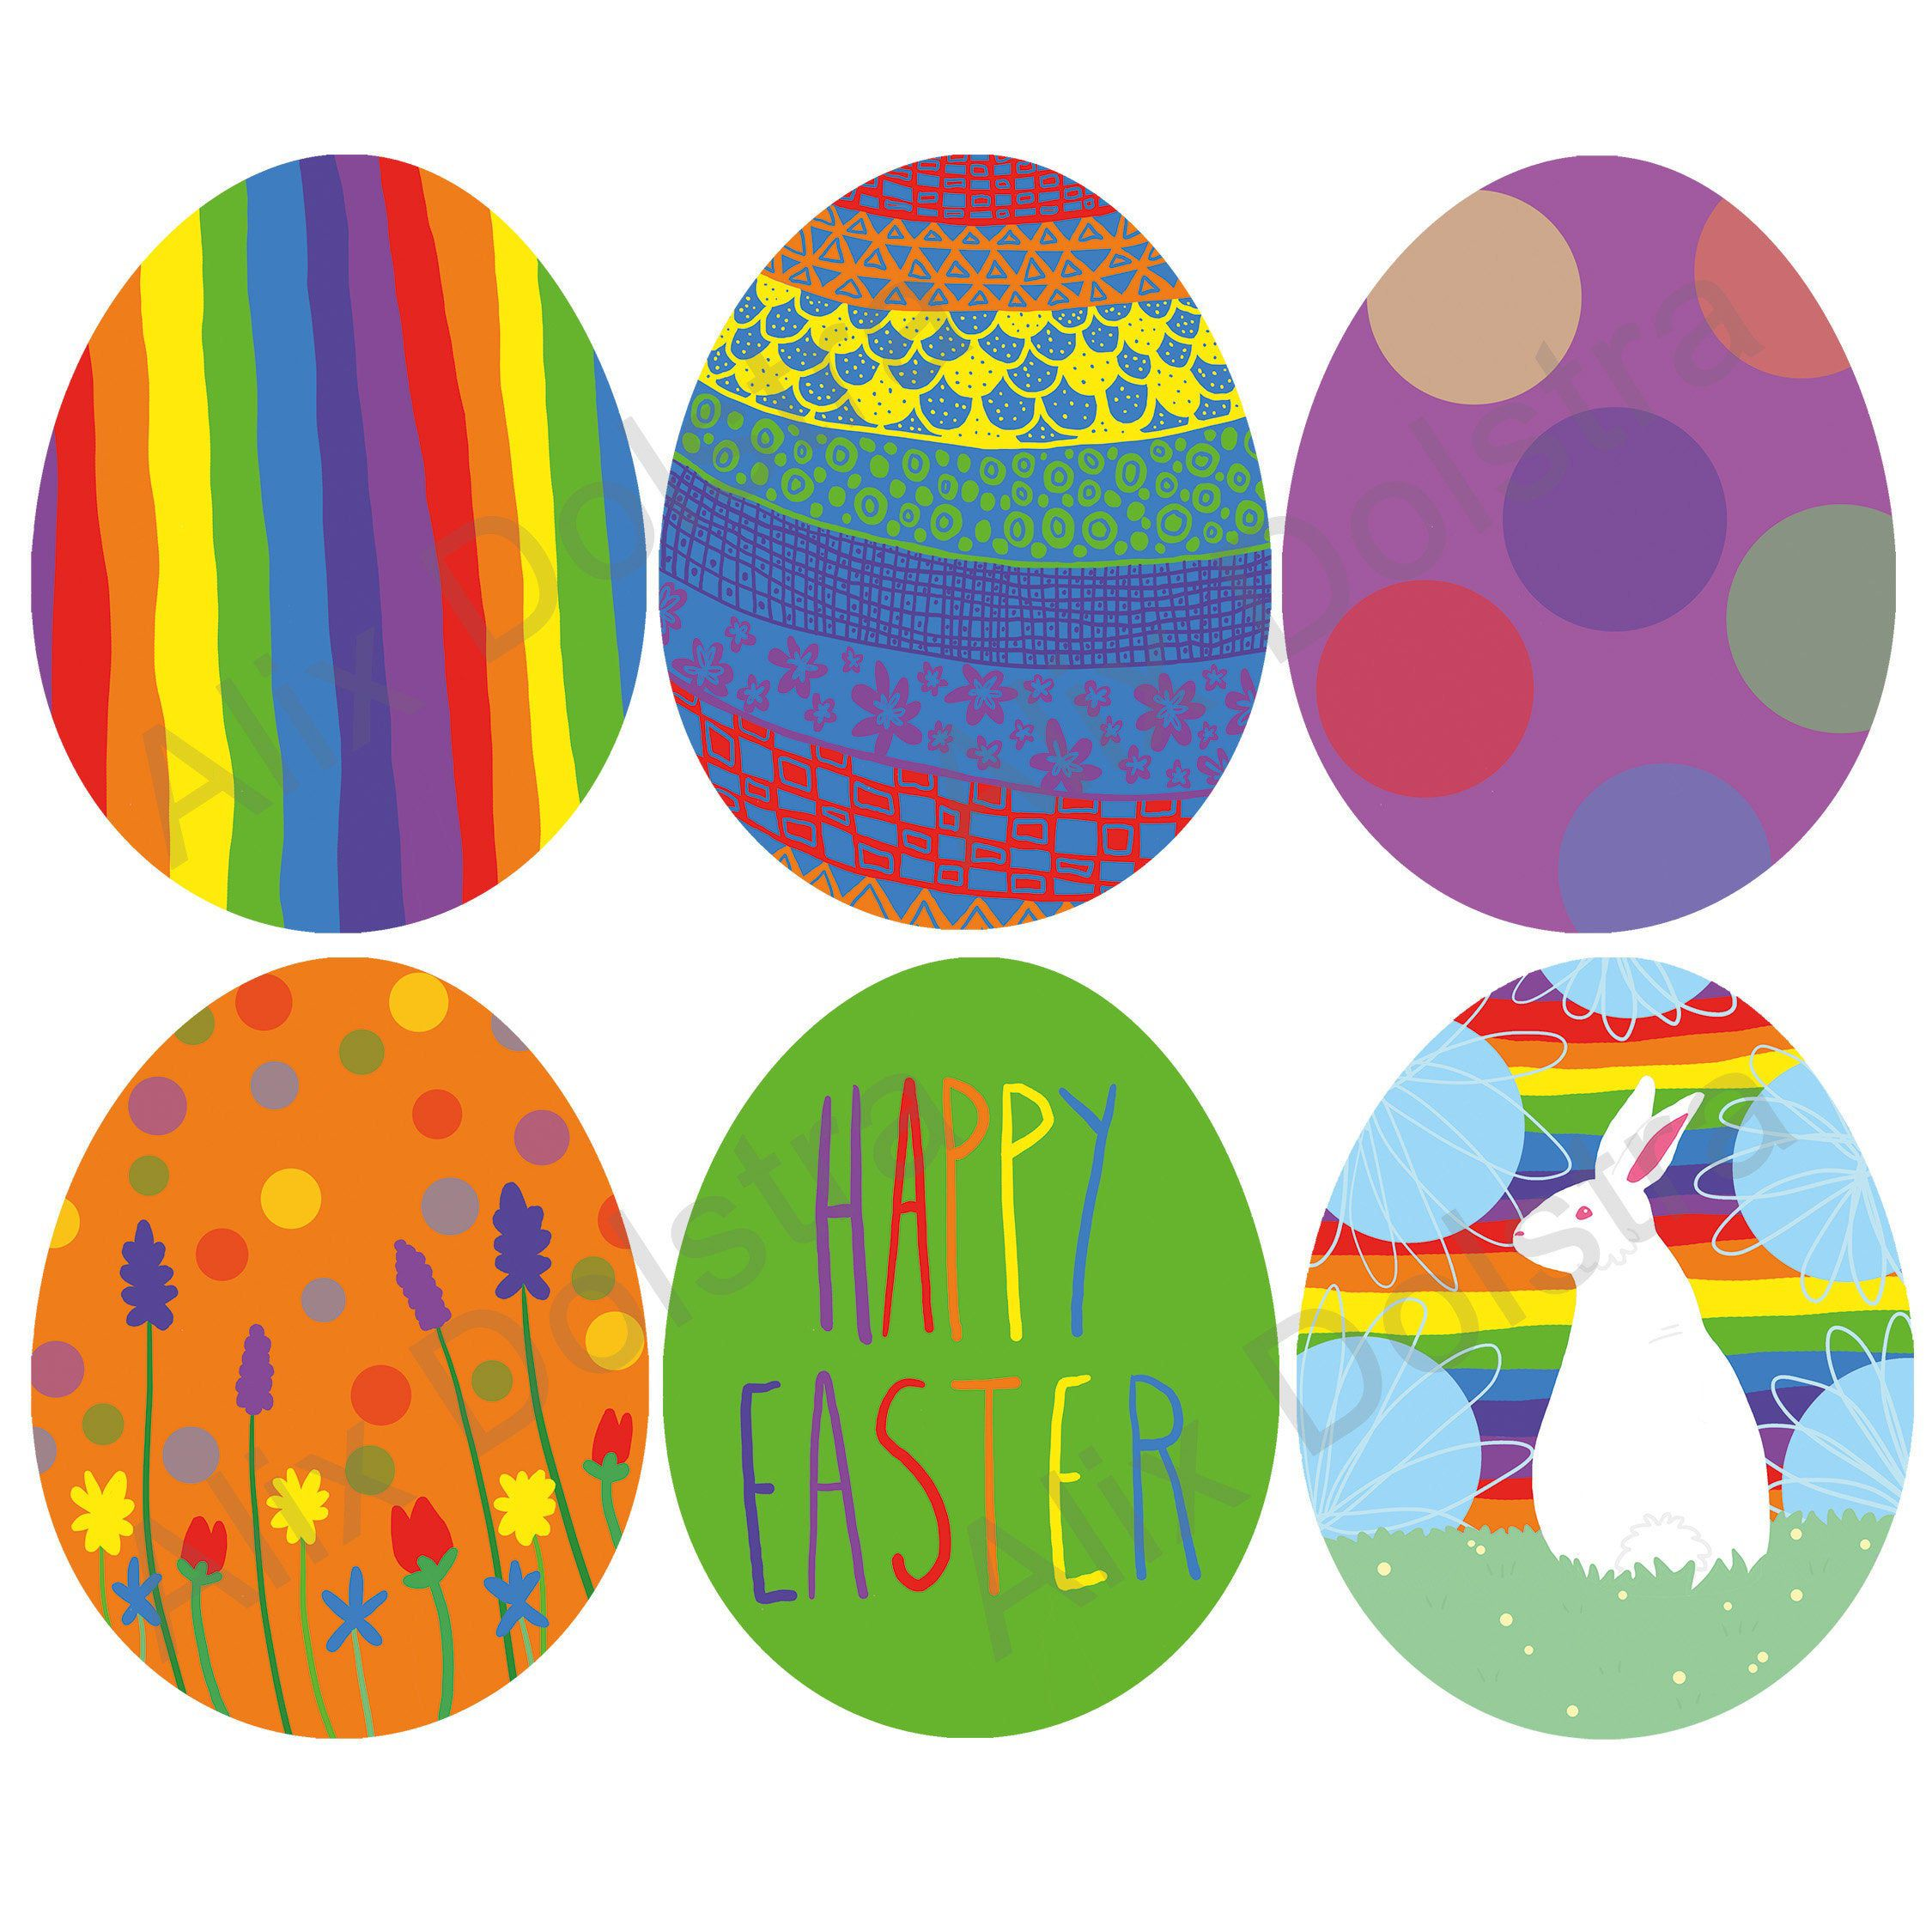 Rainbow Easter Egg Set Psd Png Instant Download Printable Clip Art In 2020 Clip Art Easter Projects How To Draw Hands